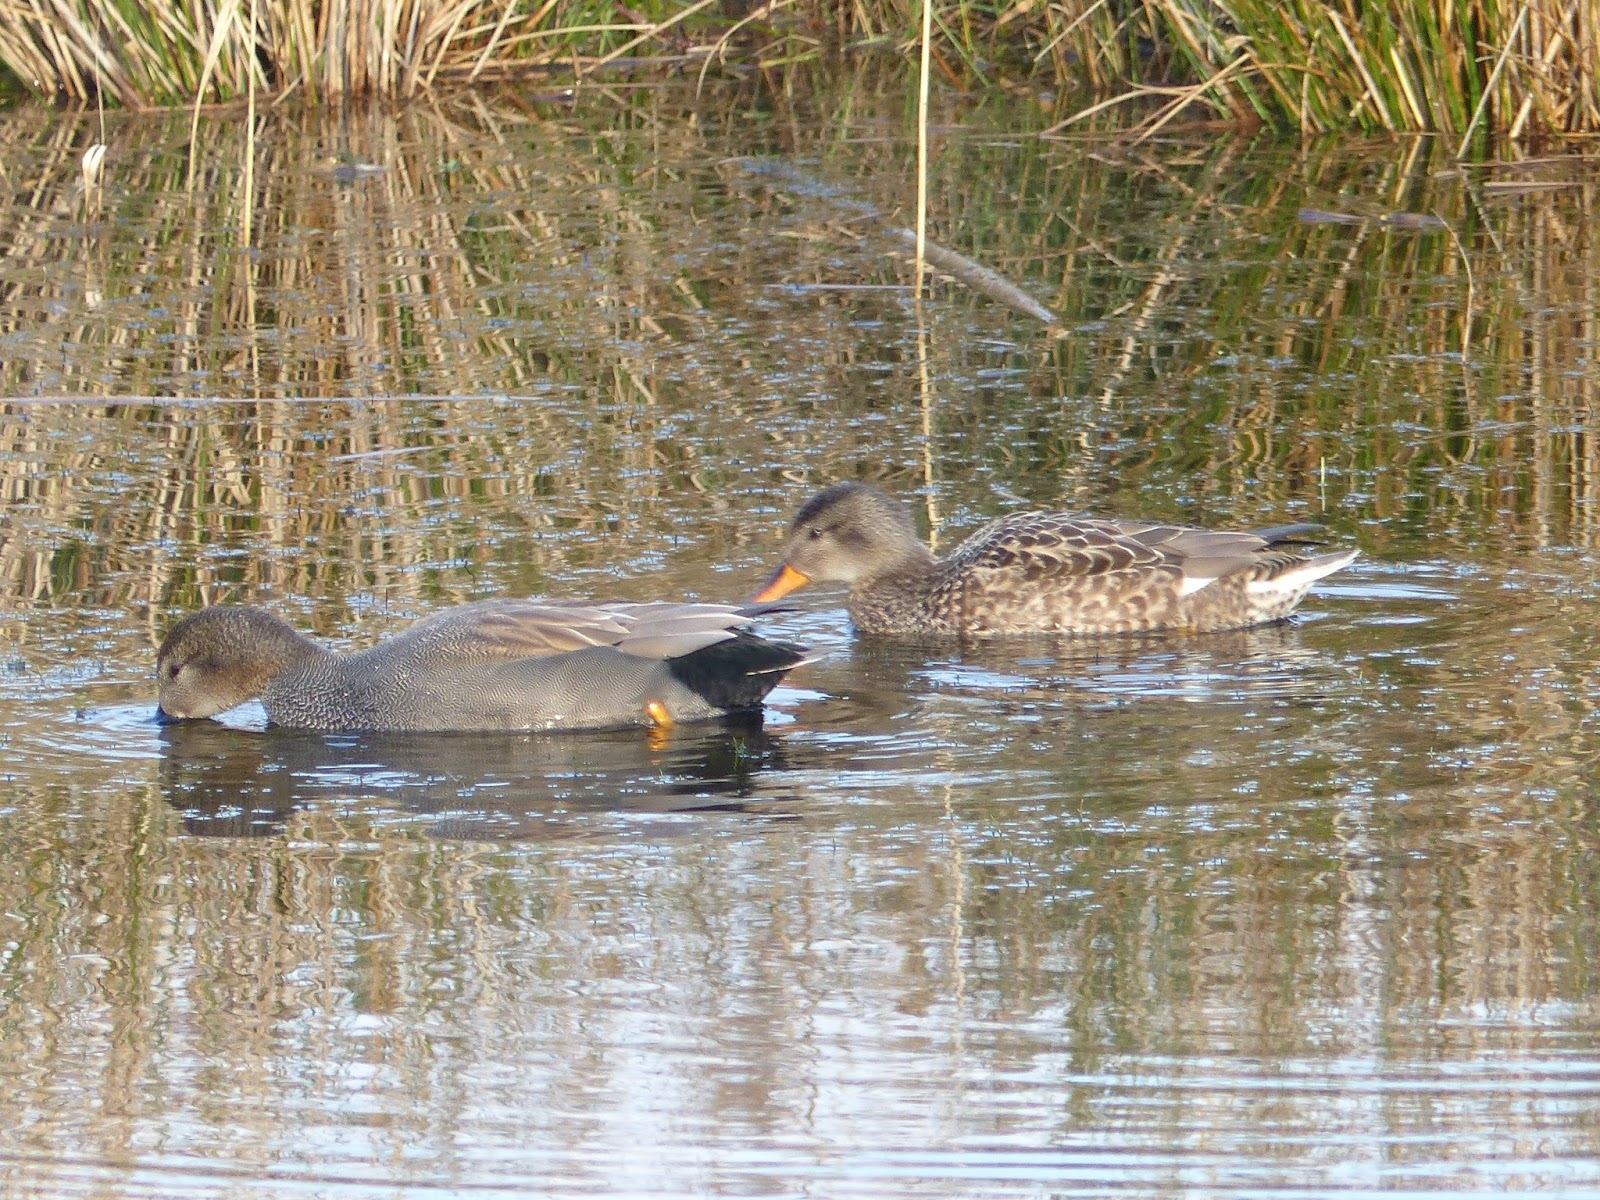 wildlife at willey warks th feb touch of frost chilly cormorants were present looking fine in their breeding plumage